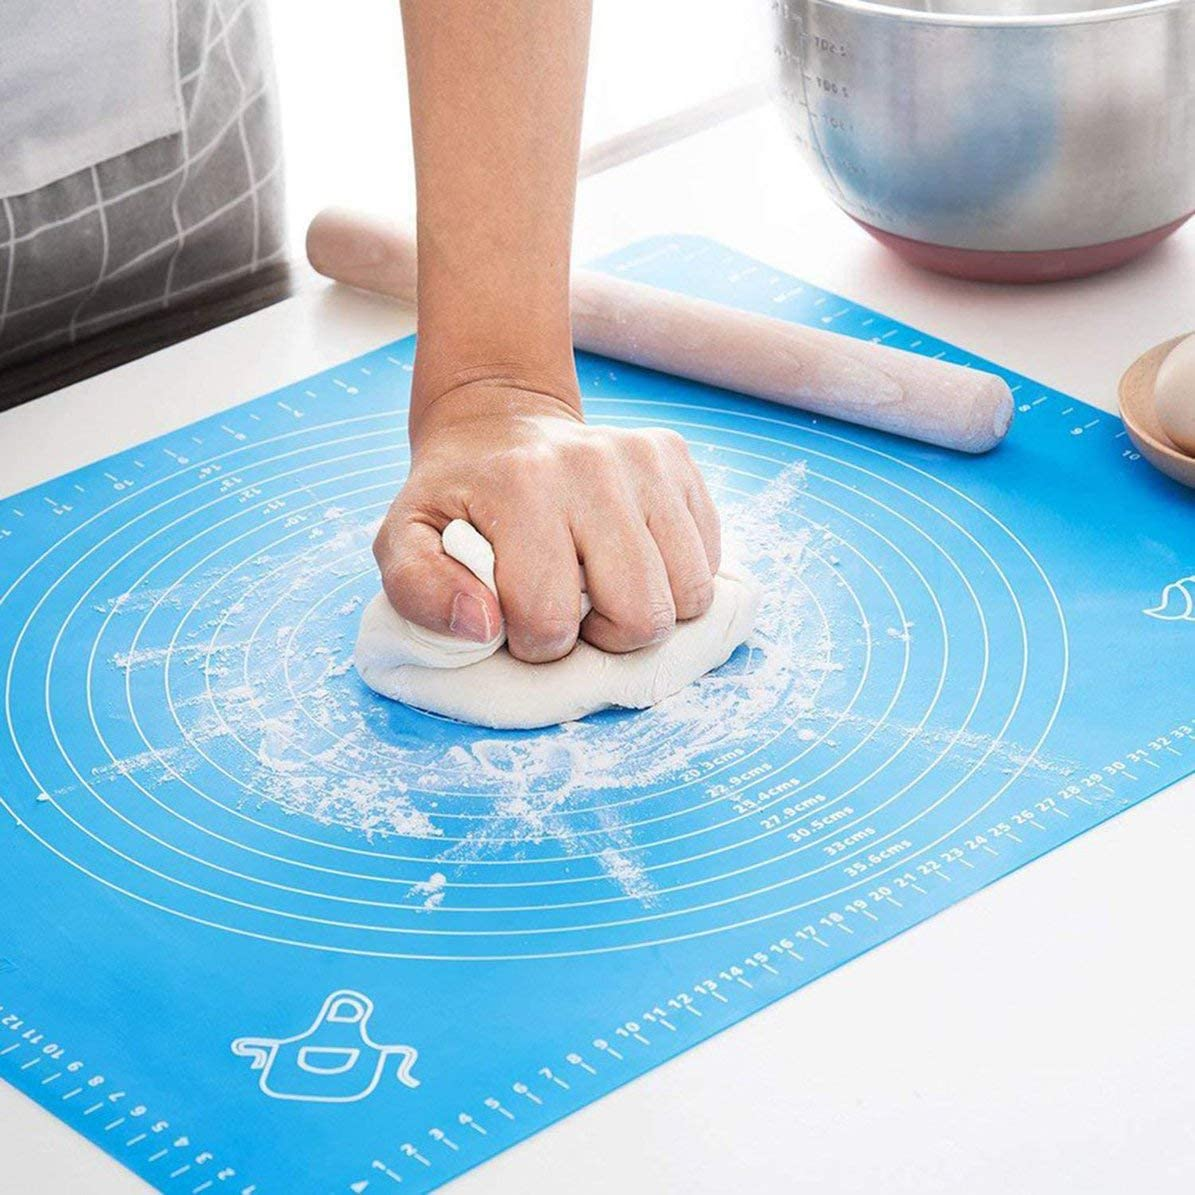 290 * 260 Sunnyflowk Non-Stick Silicone Baking Mat Pad Sheet Baking Pastry Tools Rolling Blue